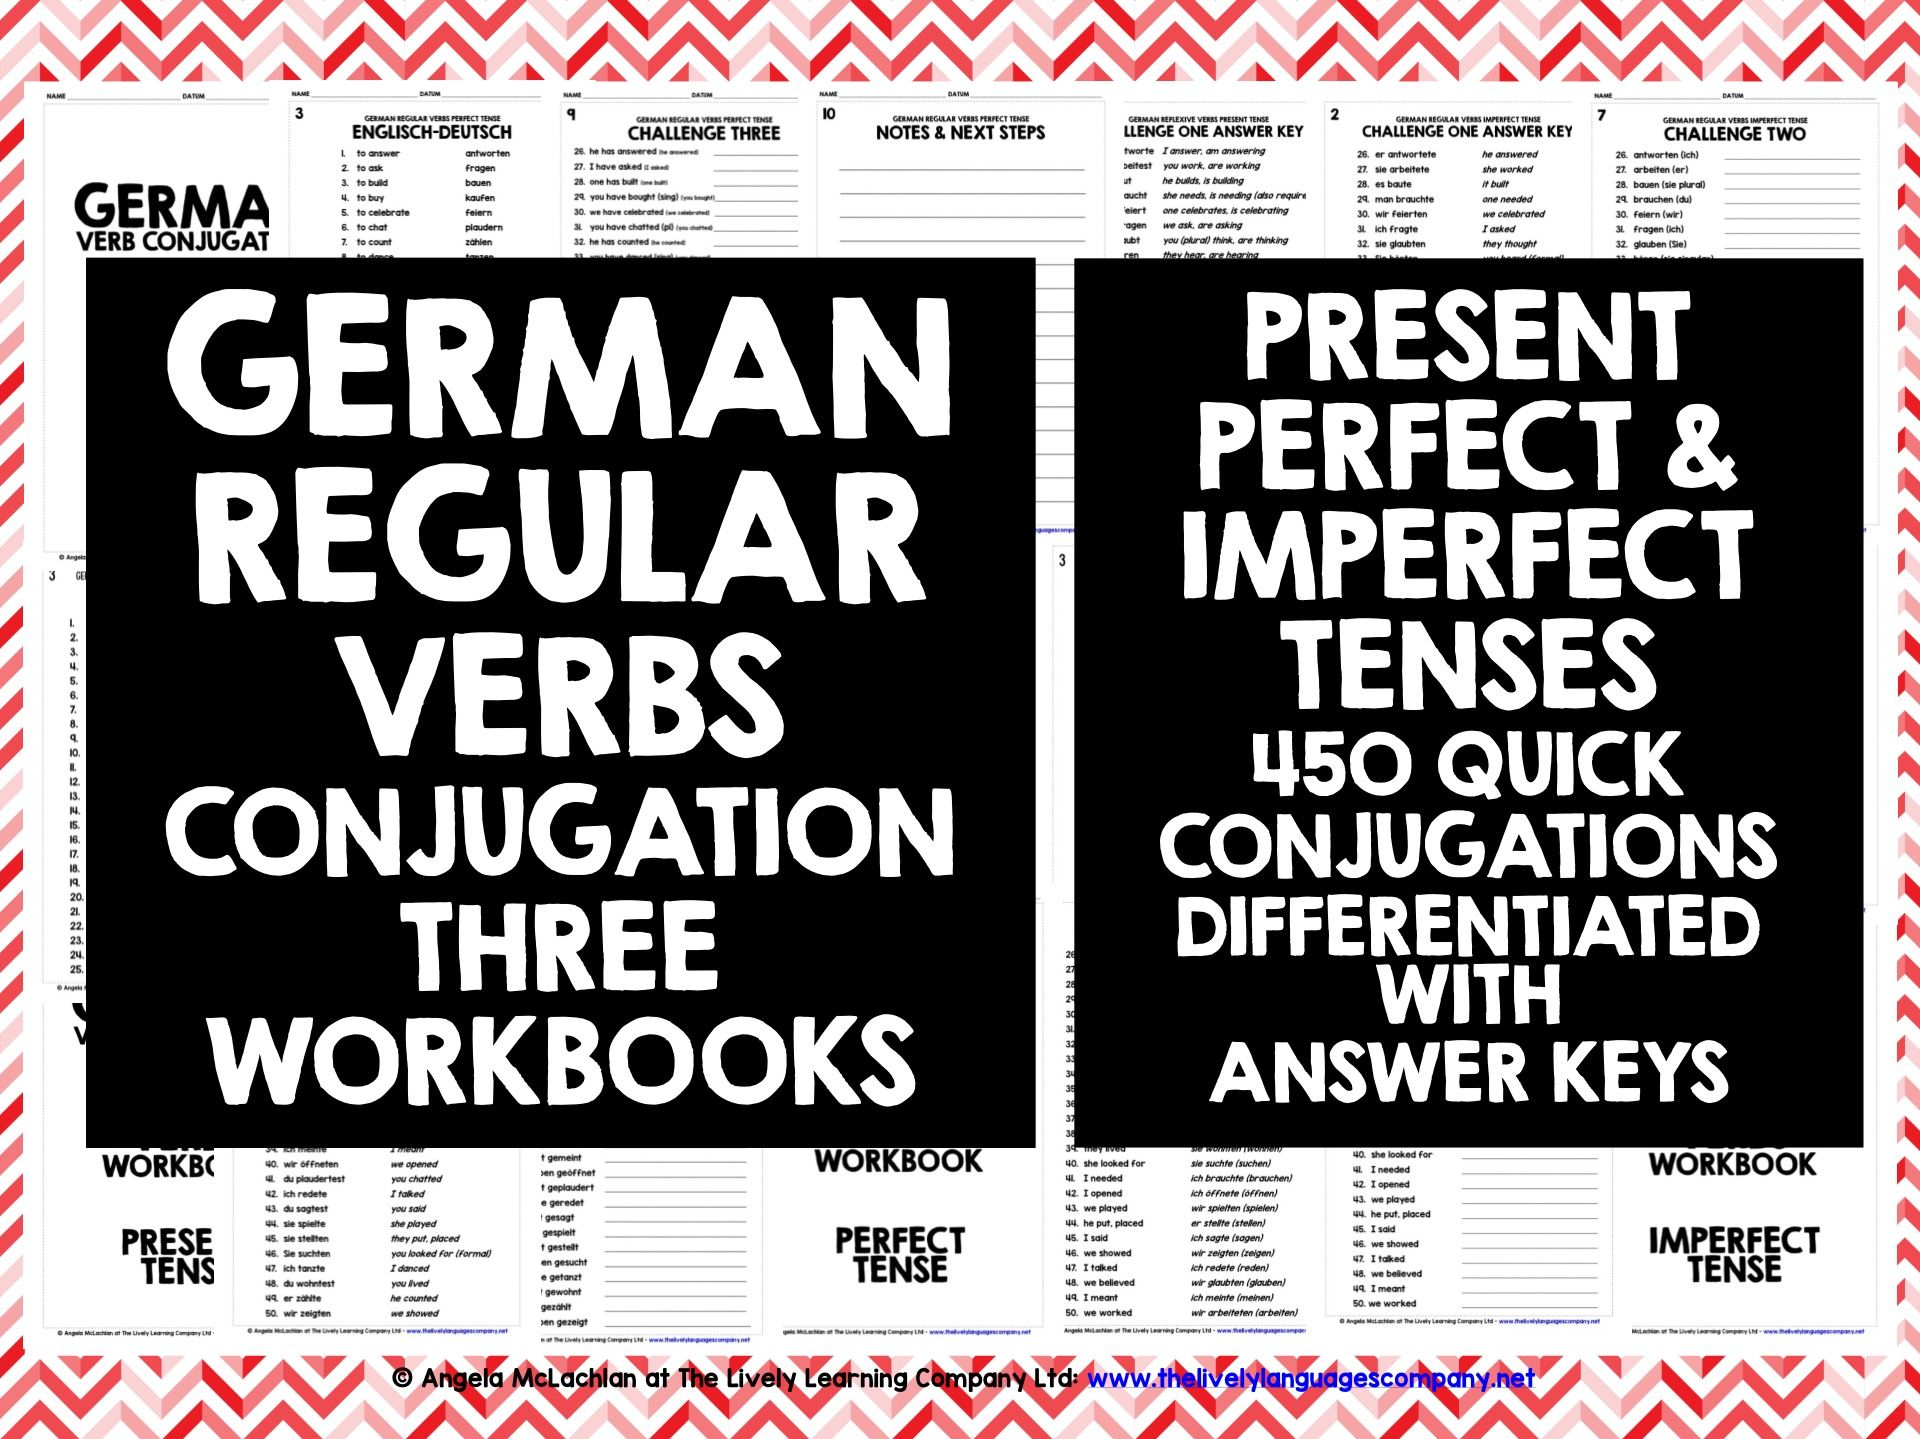 GERMAN REGULAR VERBS REVISION